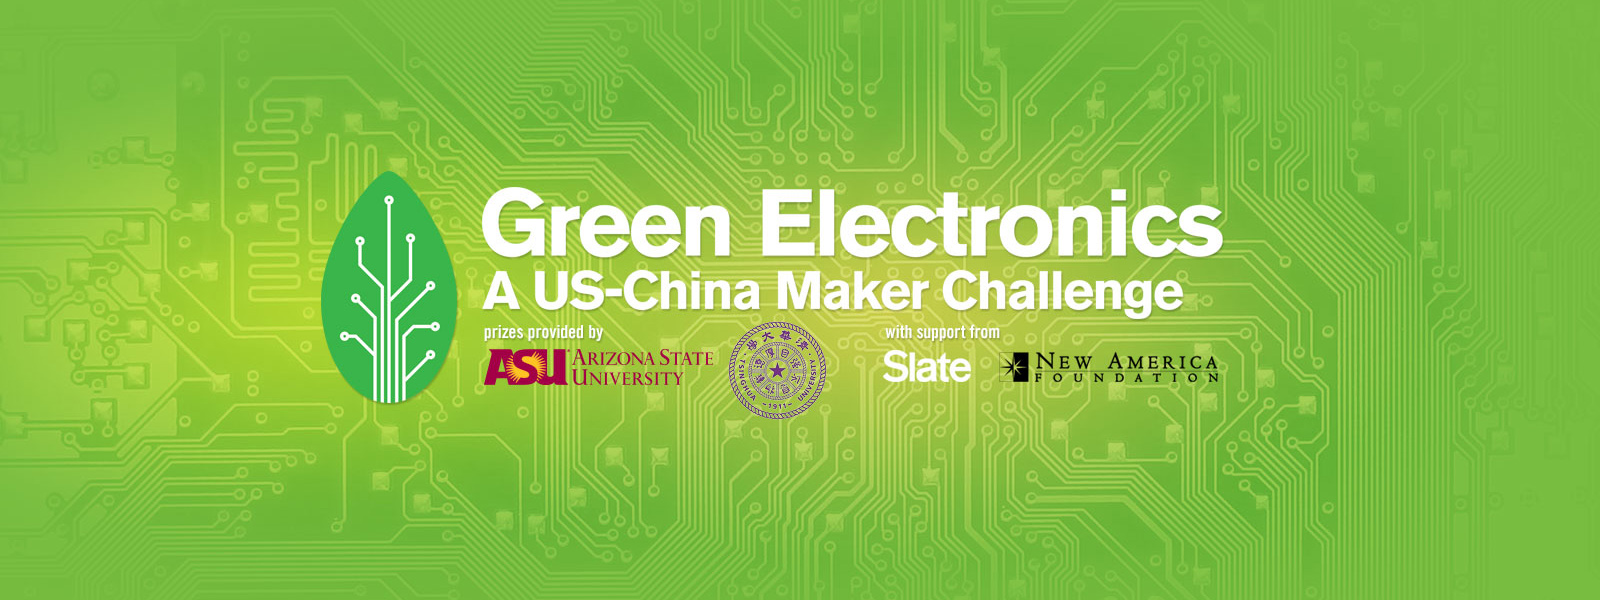 green electronics Green electronics was formed in 2010 by a team of determined hardware and software engineers from silicon valley.